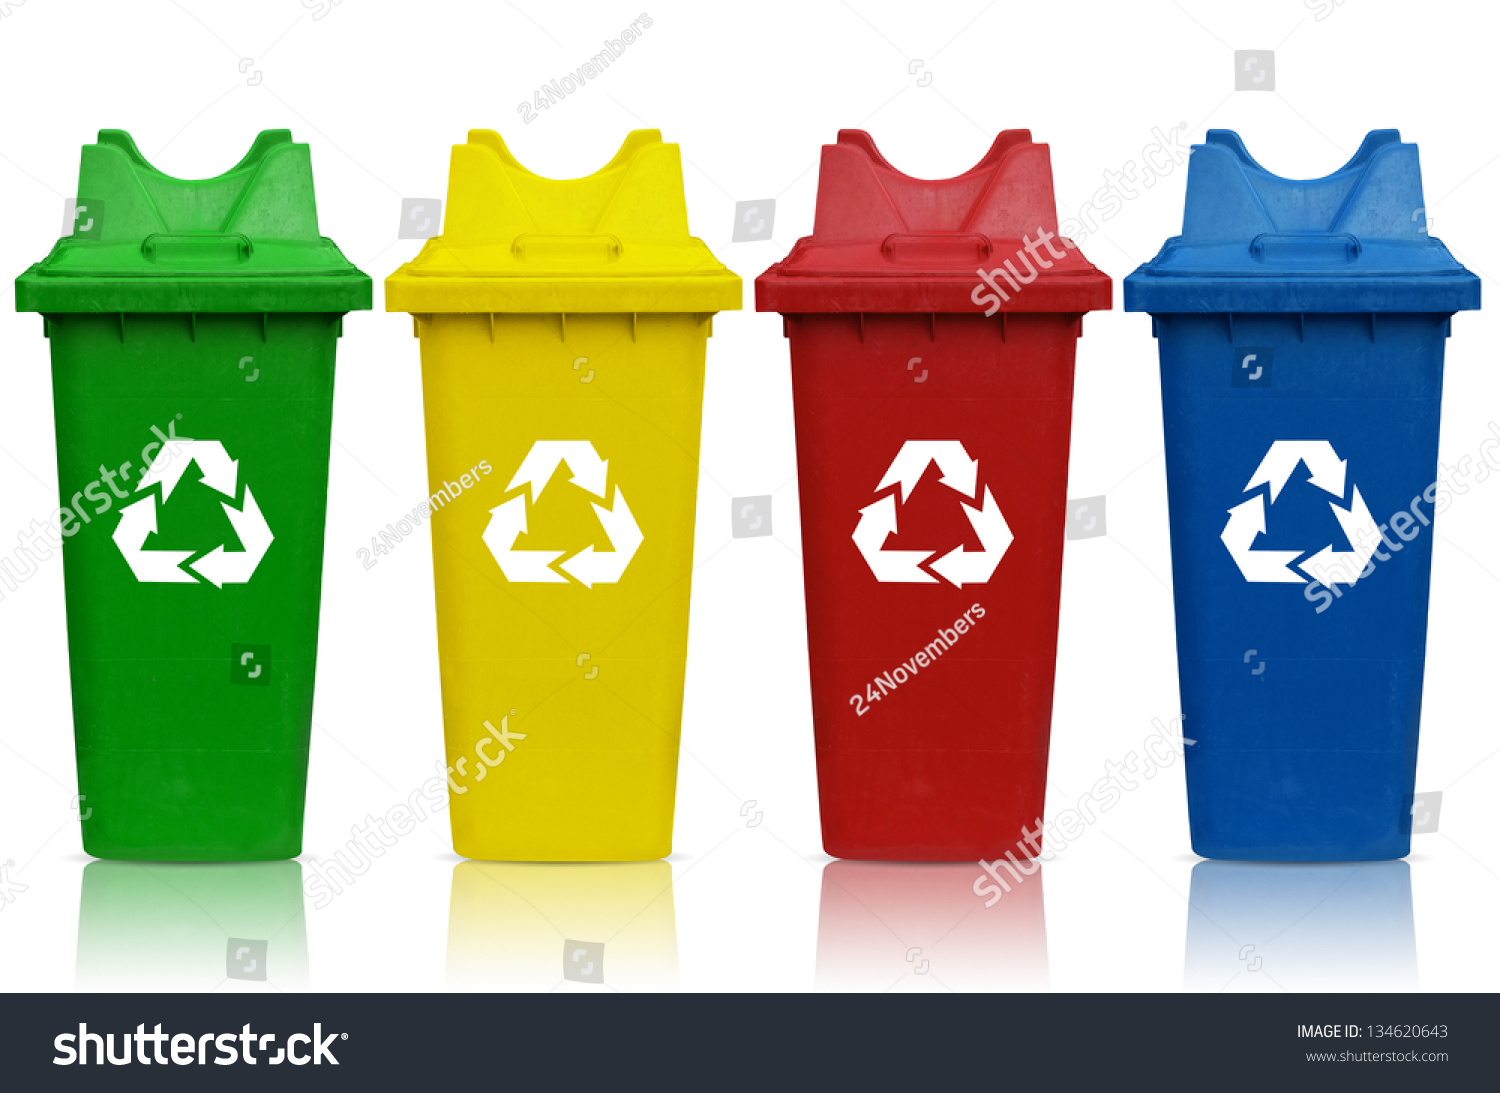 17172 besides Stock Vector Garbage And Recycling Bins With Plastic Metal Paper Glass Organic E Waste Vector Flat besides Stock Photo Types Of Recycling Bins With Bin Green Yellow Red And Blue additionally Eaten Apple Clip Art together with Ewaste. on green trash can cartoon